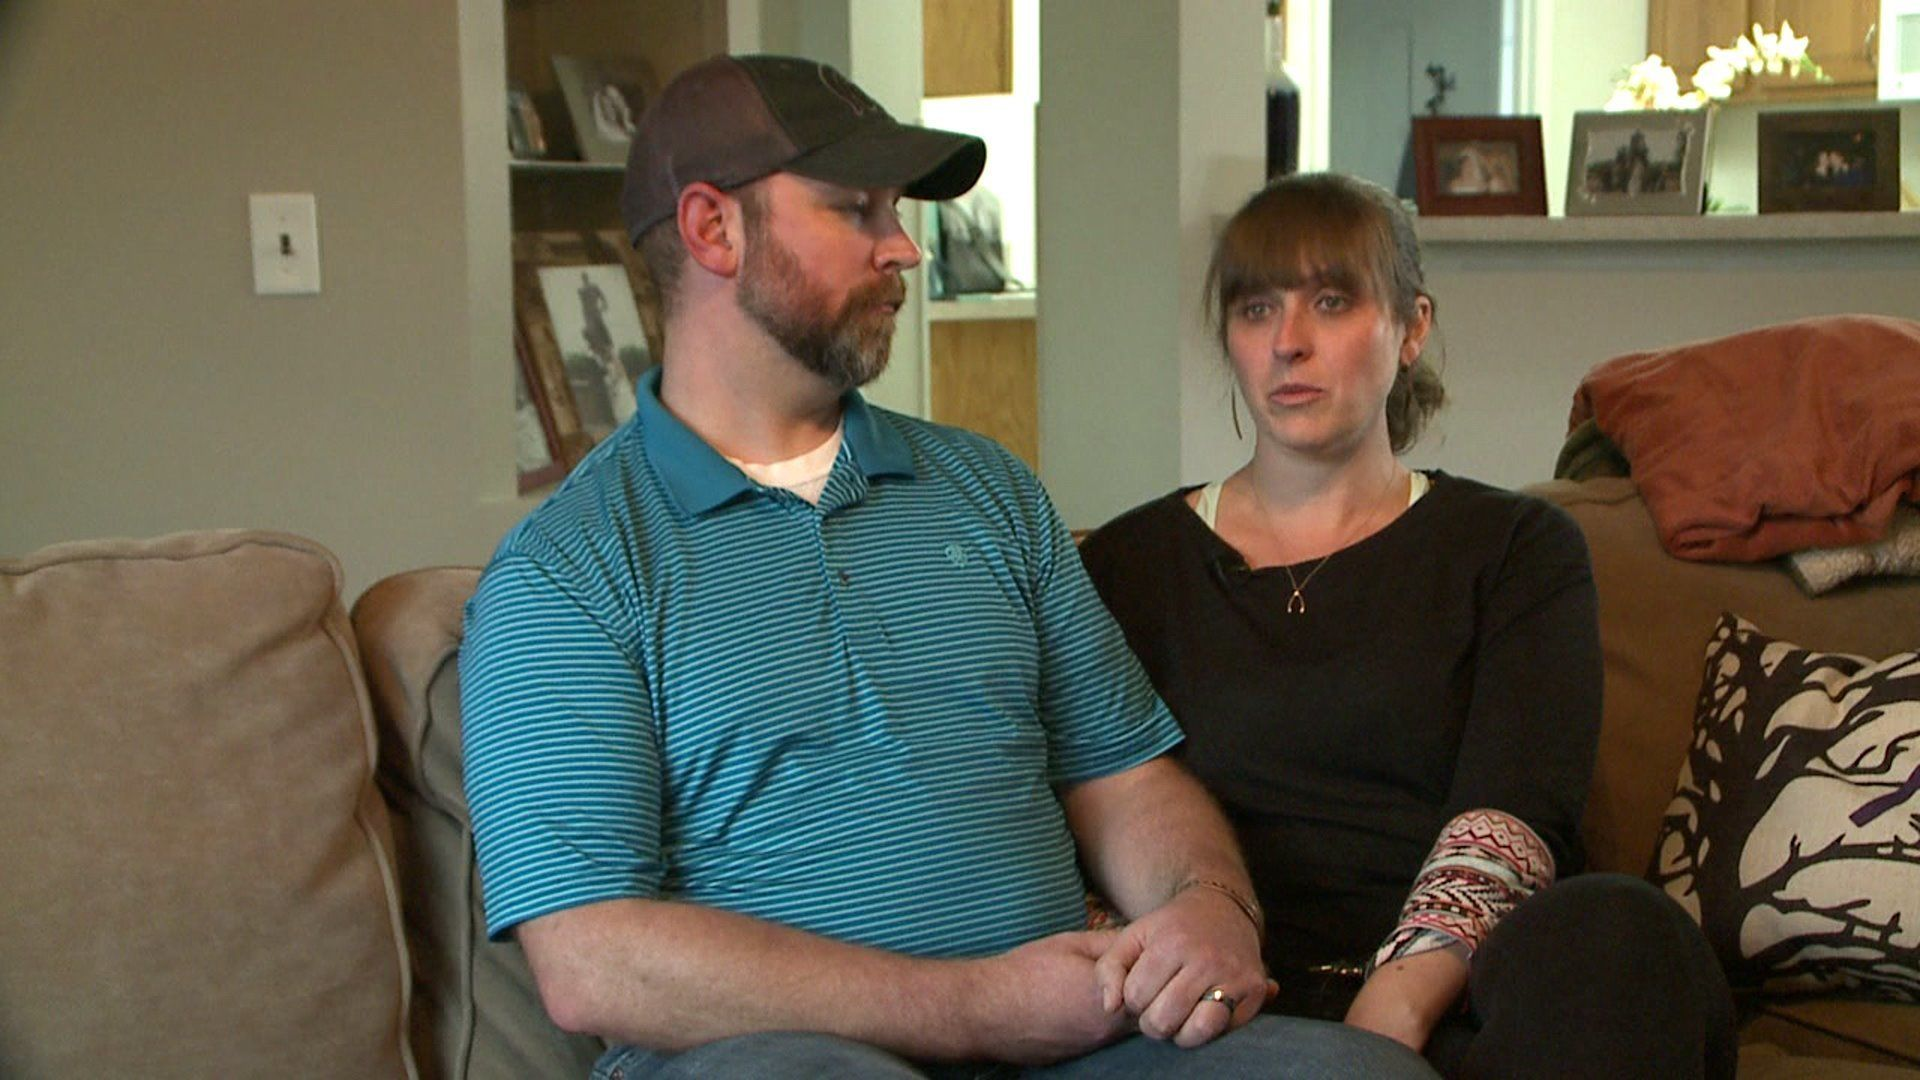 Pharmacist allegedly denies woman miscarriage medication over religious beliefs